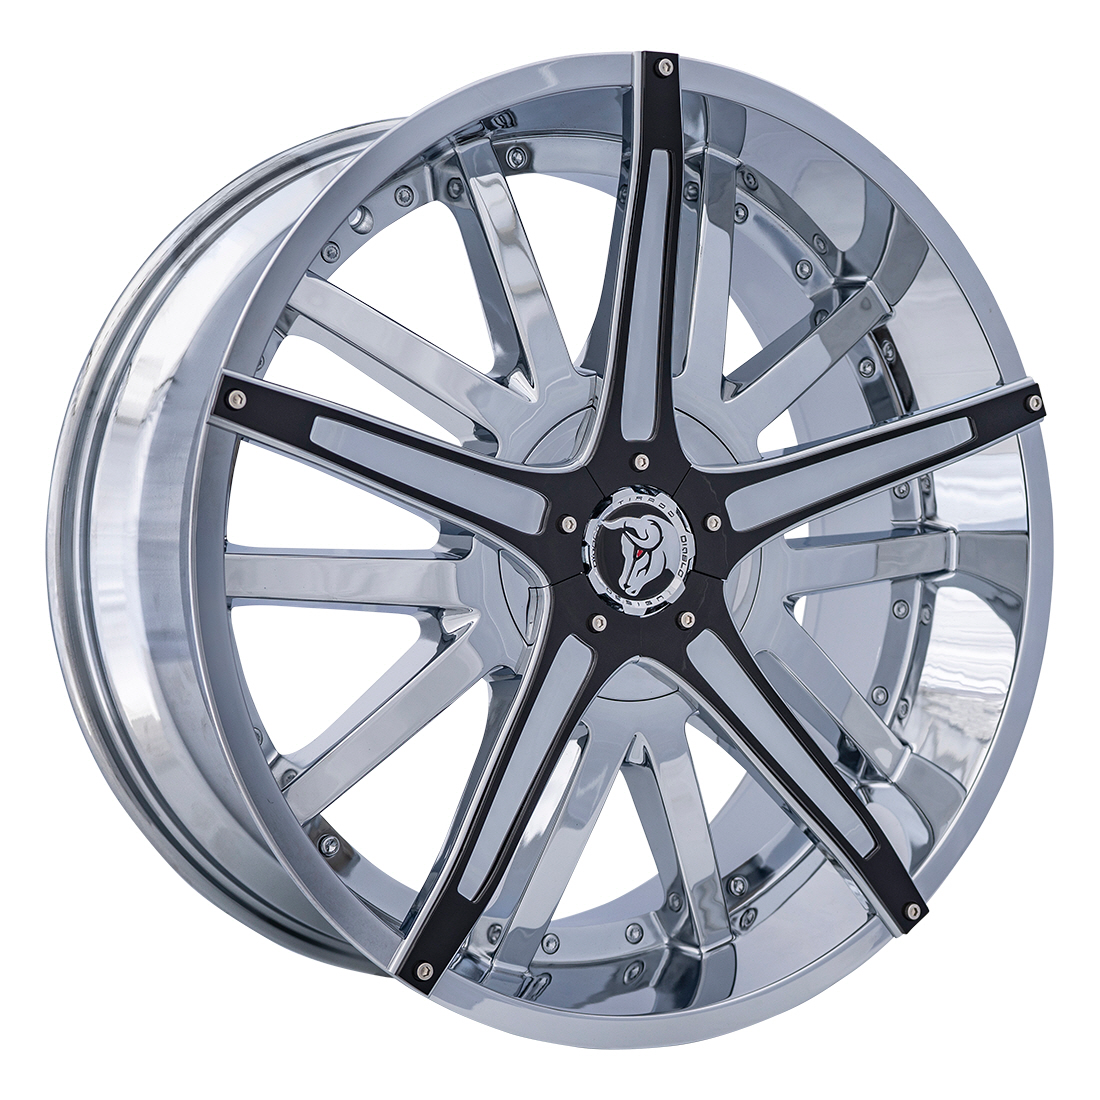 DAGGER  WHEELS AND RIMS PACKAGES